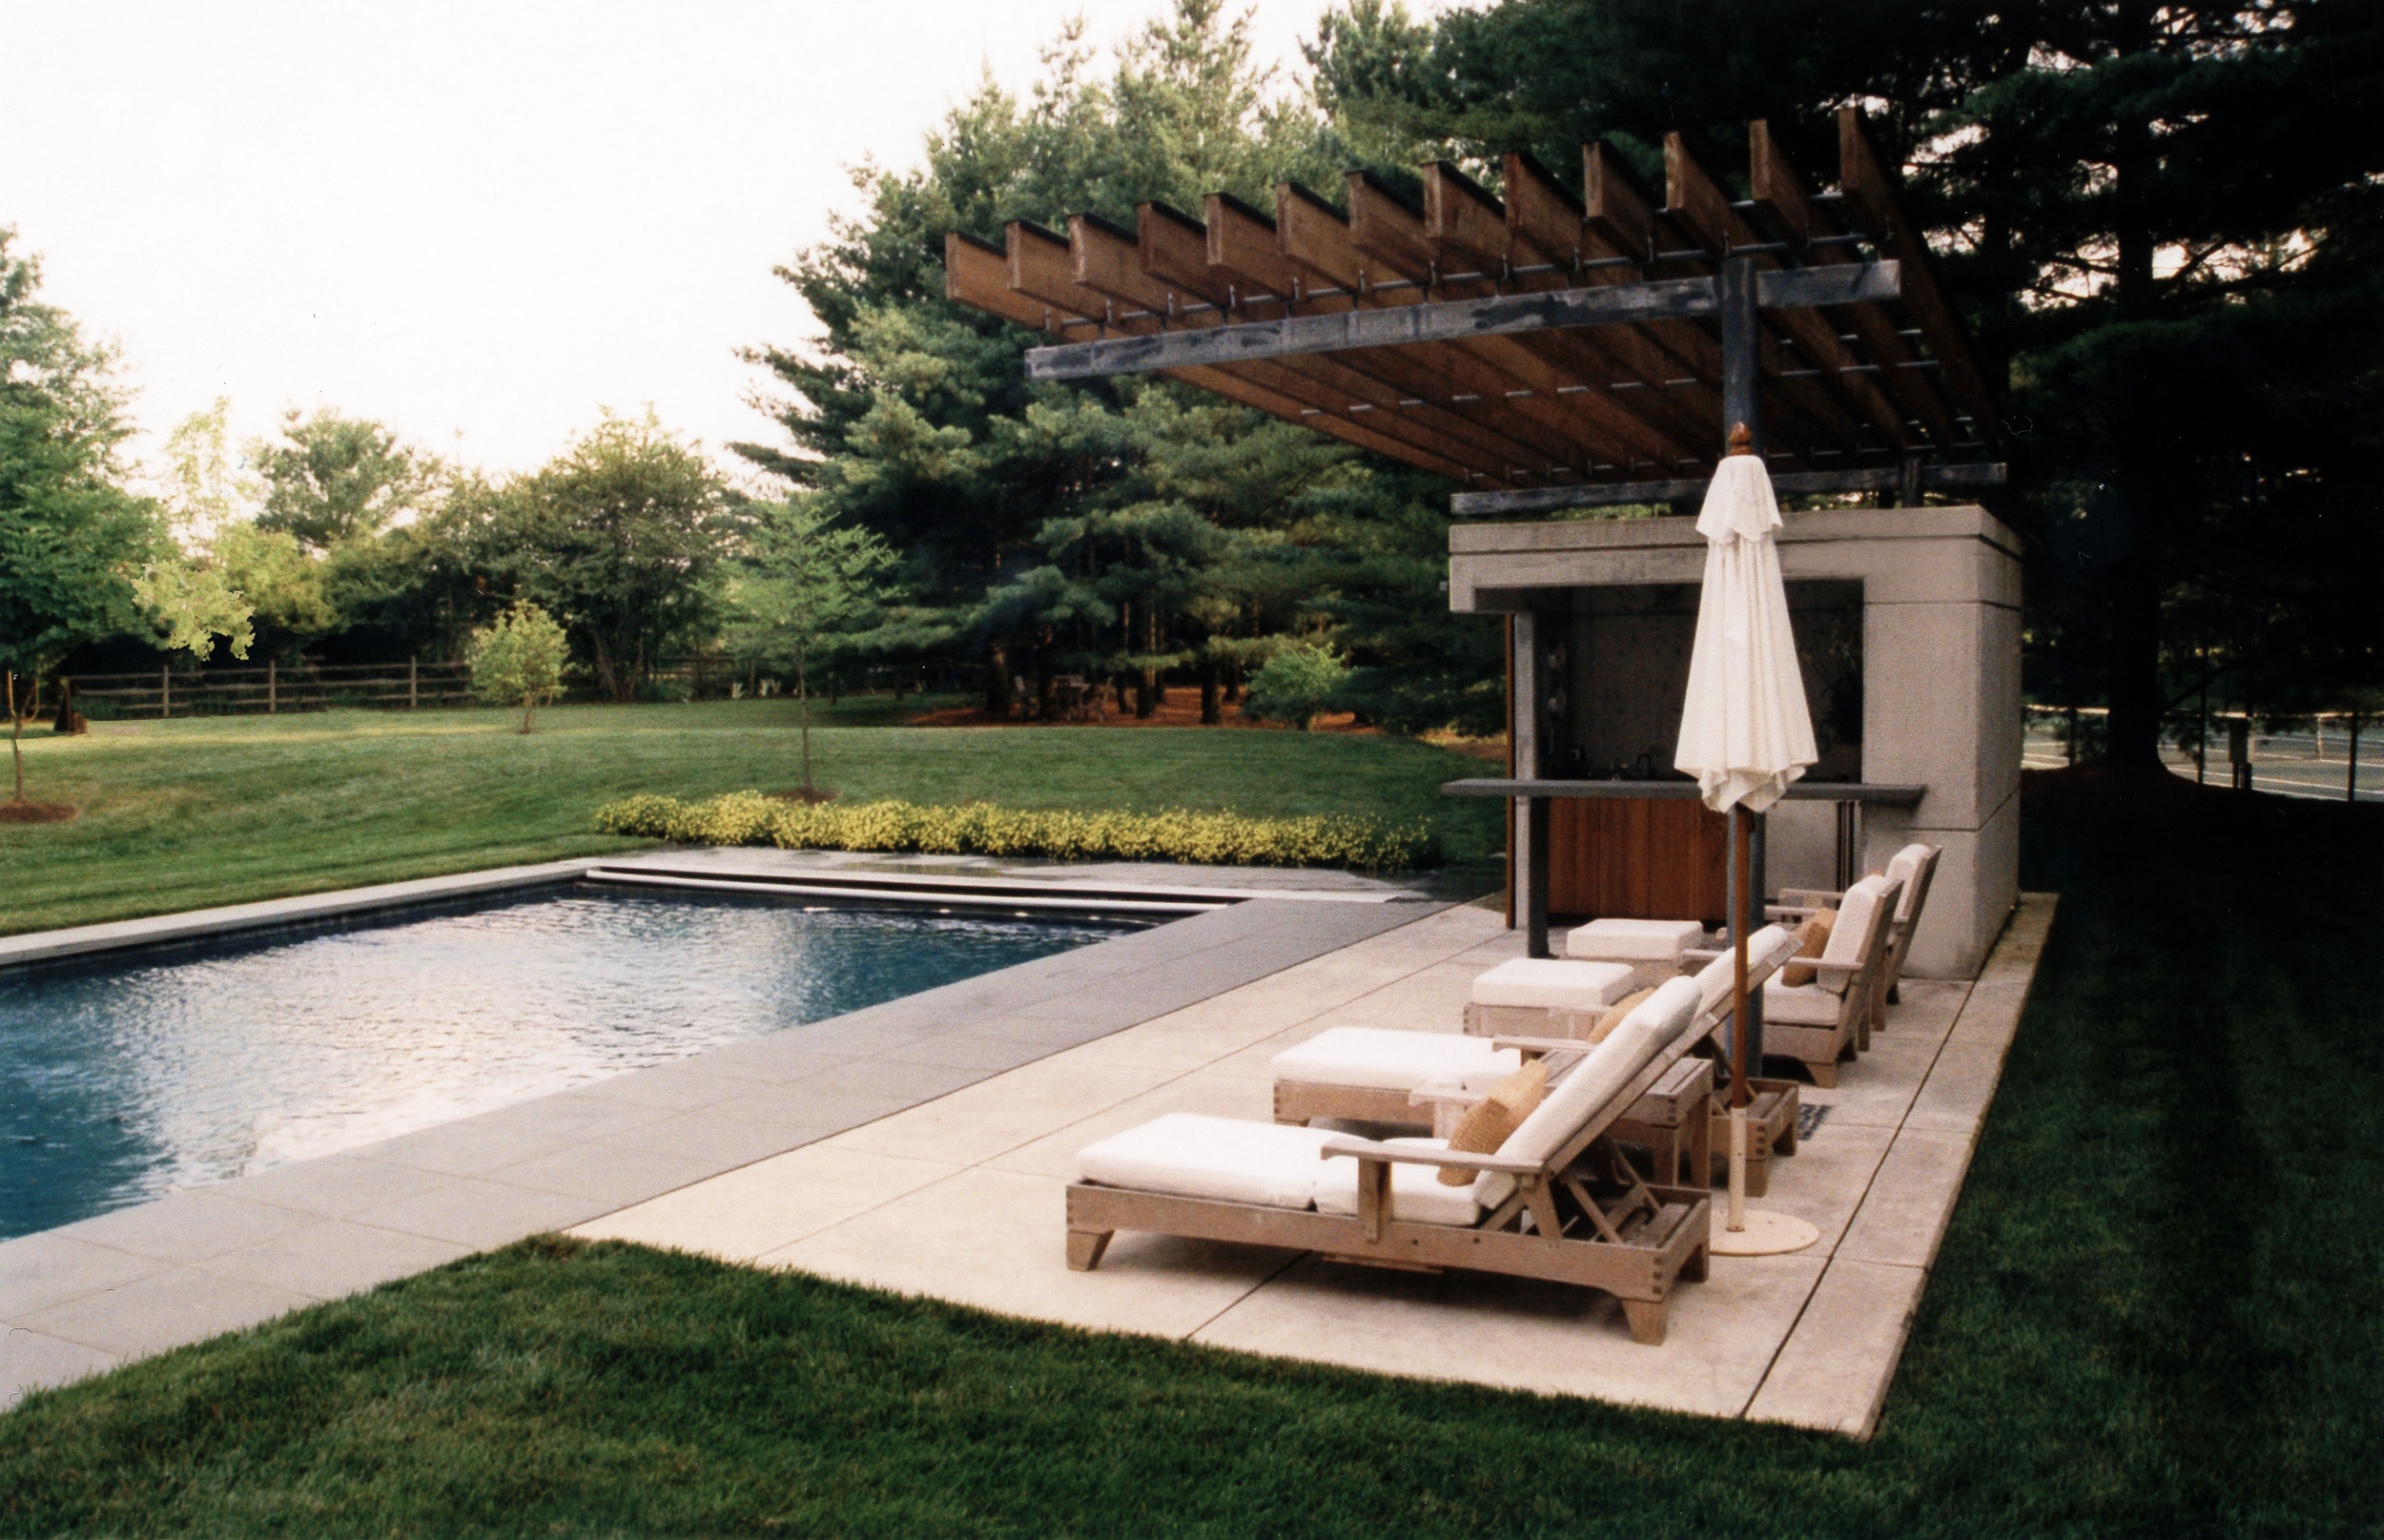 pool house copy.jpg